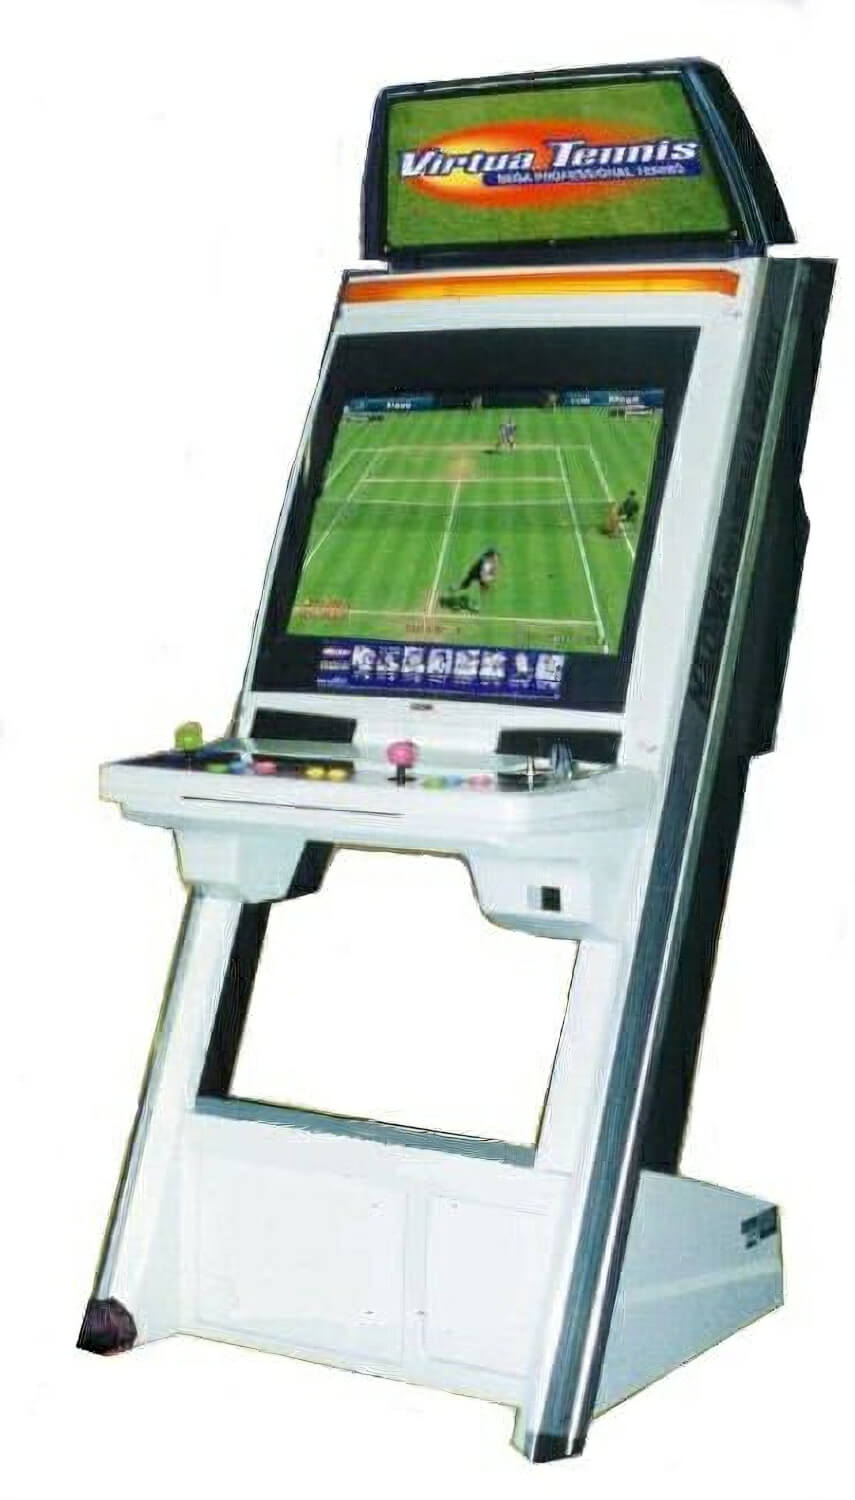 Sega Virtua Tennis Naomi Arcade Machine Liberty Games